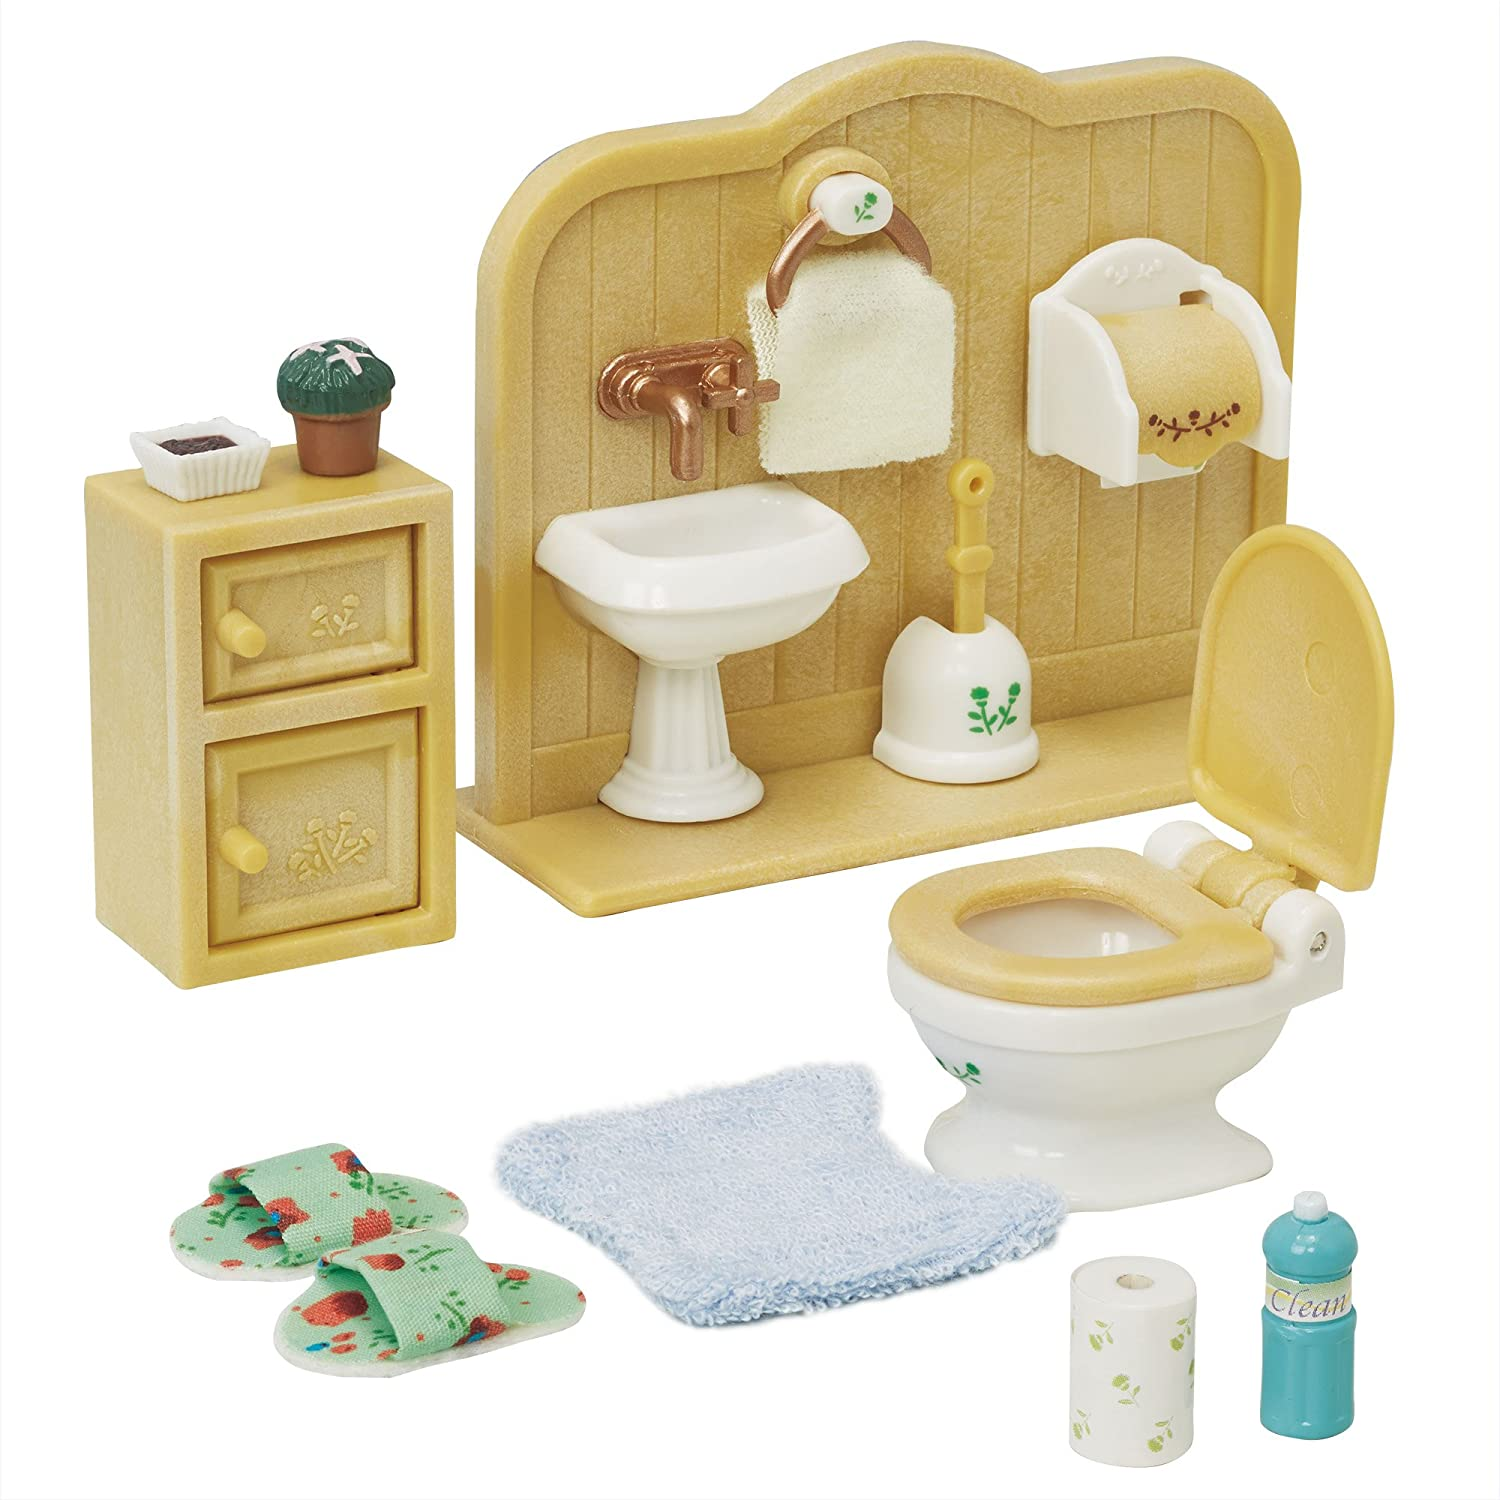 Sylvanian Families Country Bathroom Set Cheap Toys Kids Toys